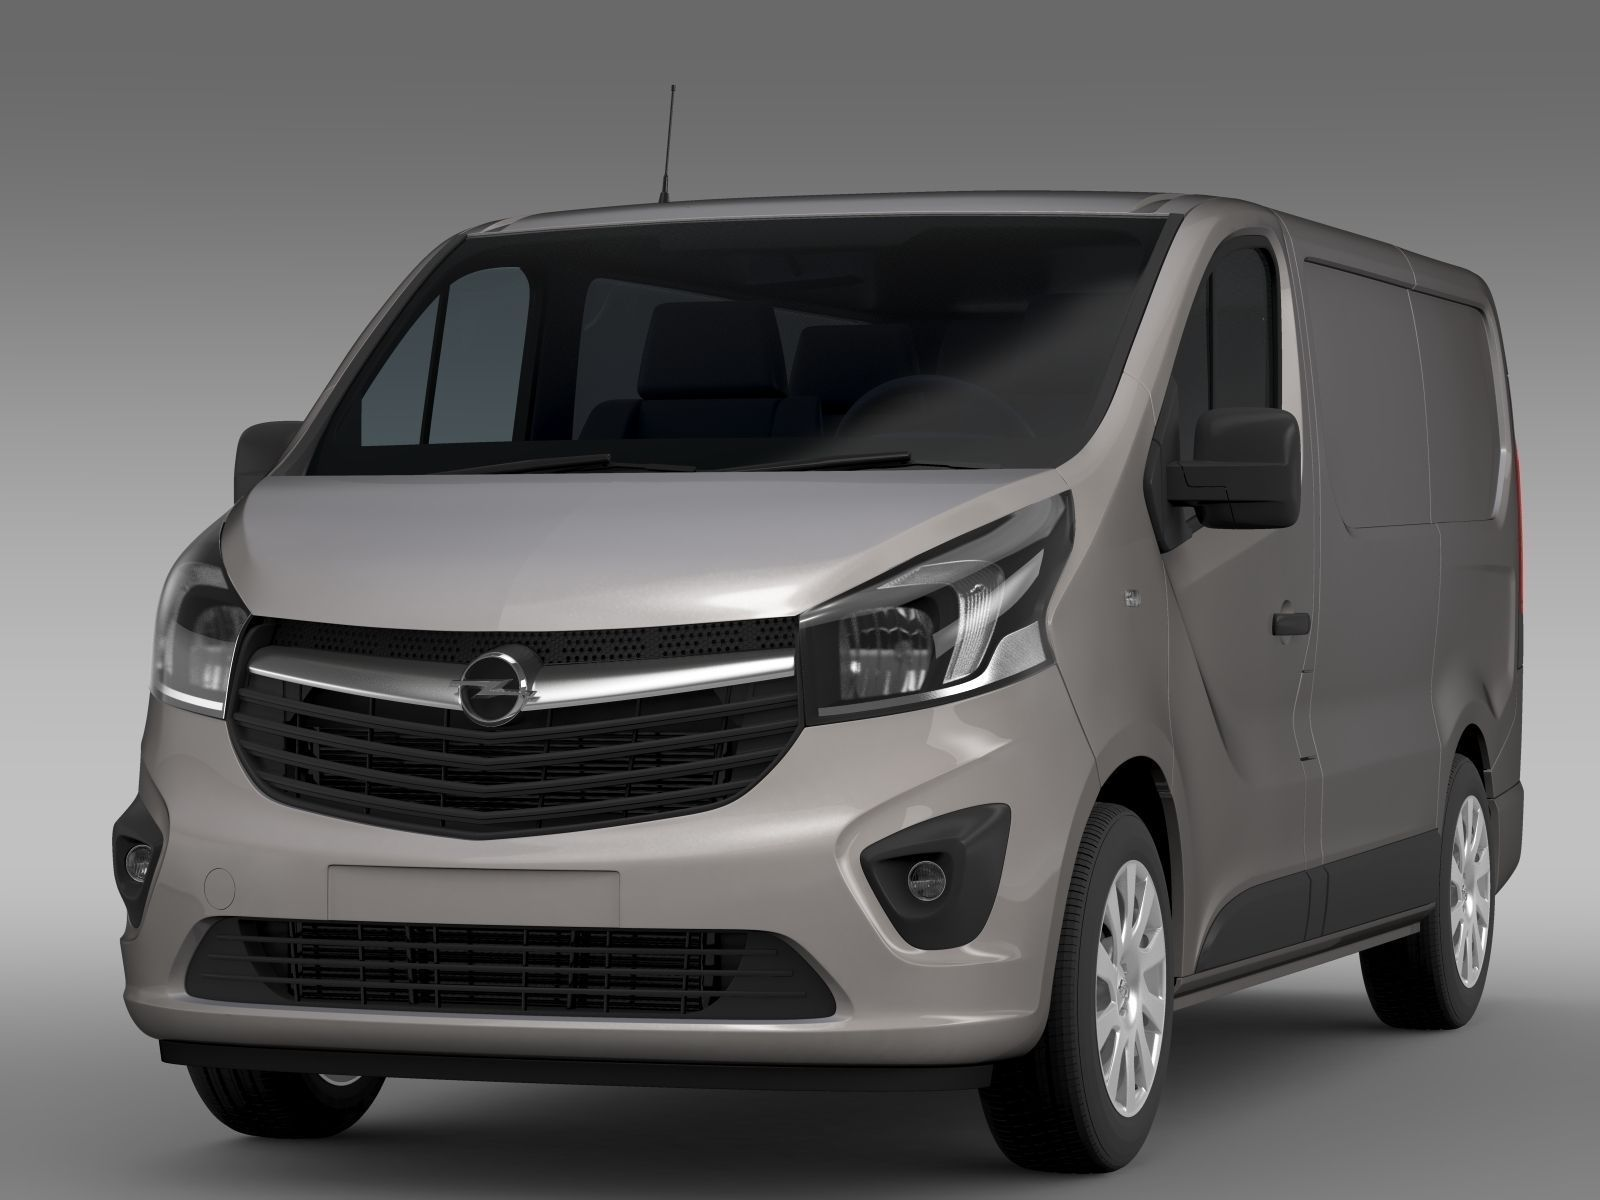 opel vivaro van 2015 3d model max obj fbx c4d lwo lw lws ma mb. Black Bedroom Furniture Sets. Home Design Ideas